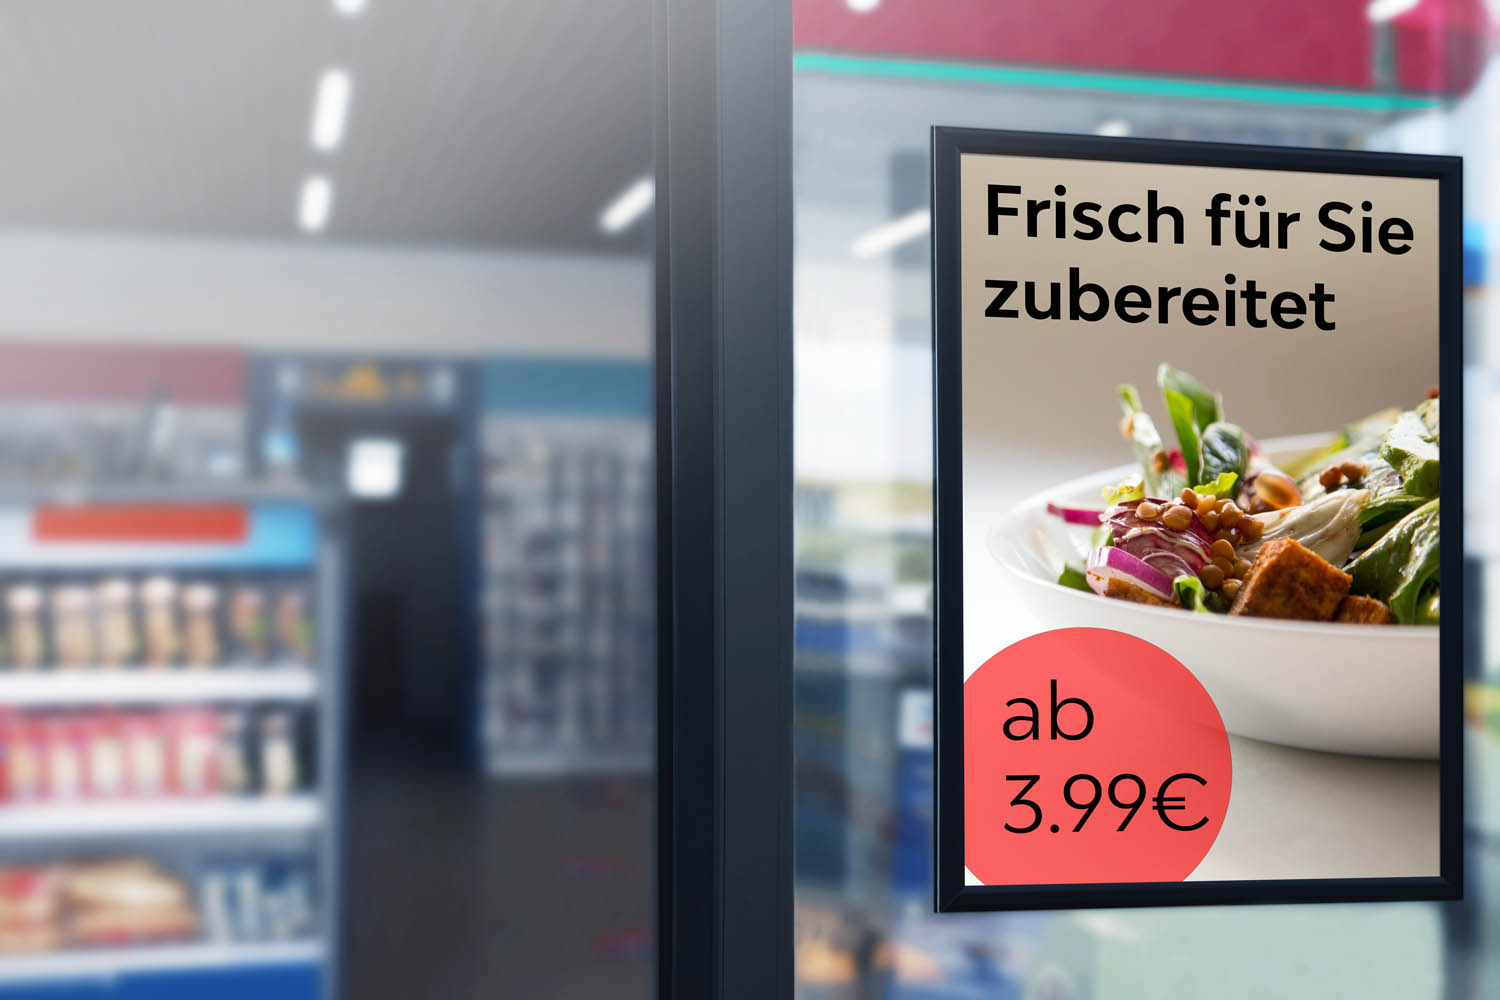 Blank advertising billboard placard (Clipping Path) in the market window with blurred merket background